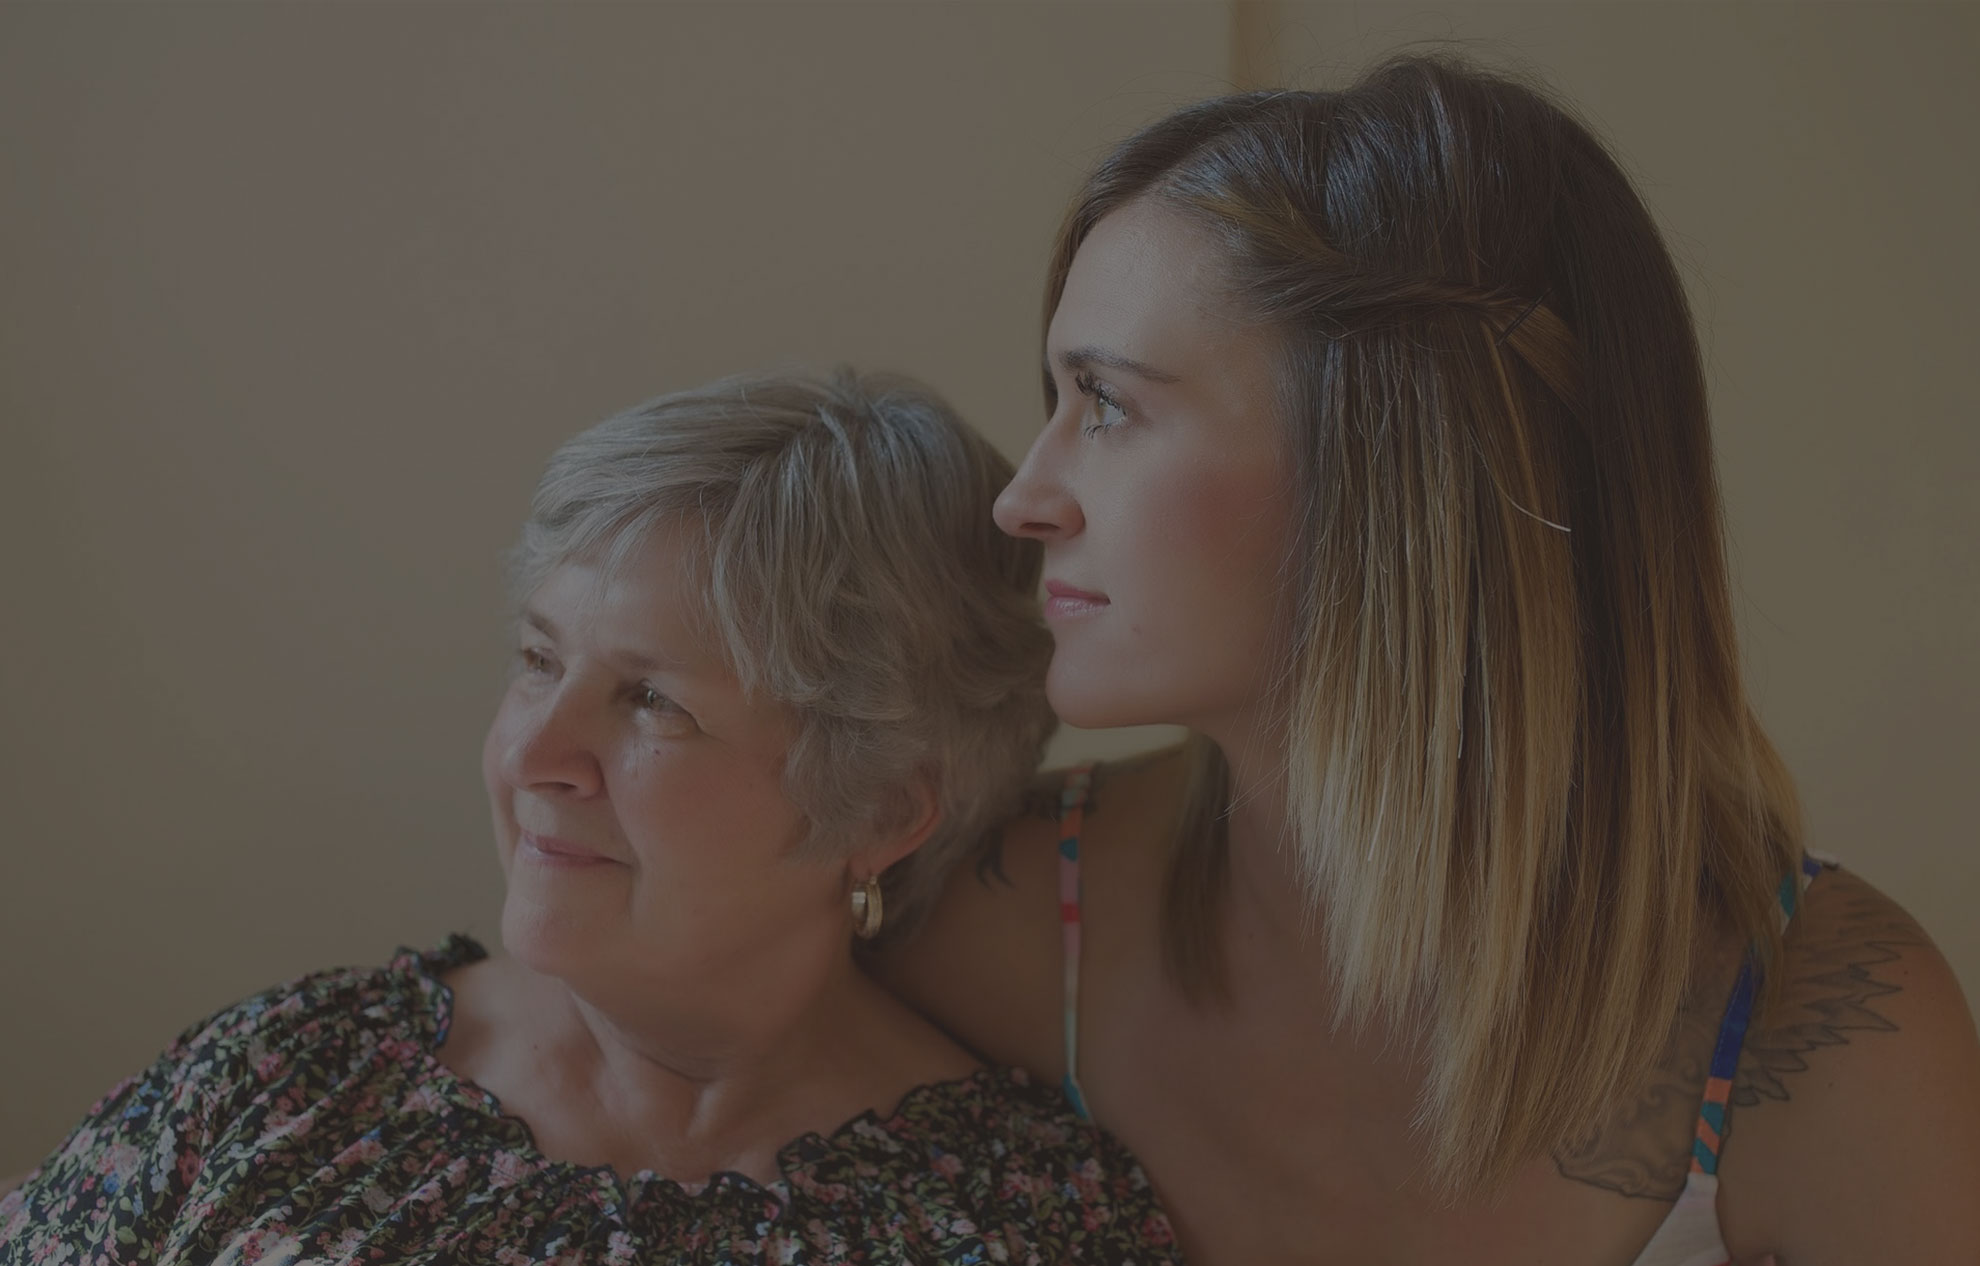 Have you been thrust into a care-giving role for your aging parents? Geriatric care